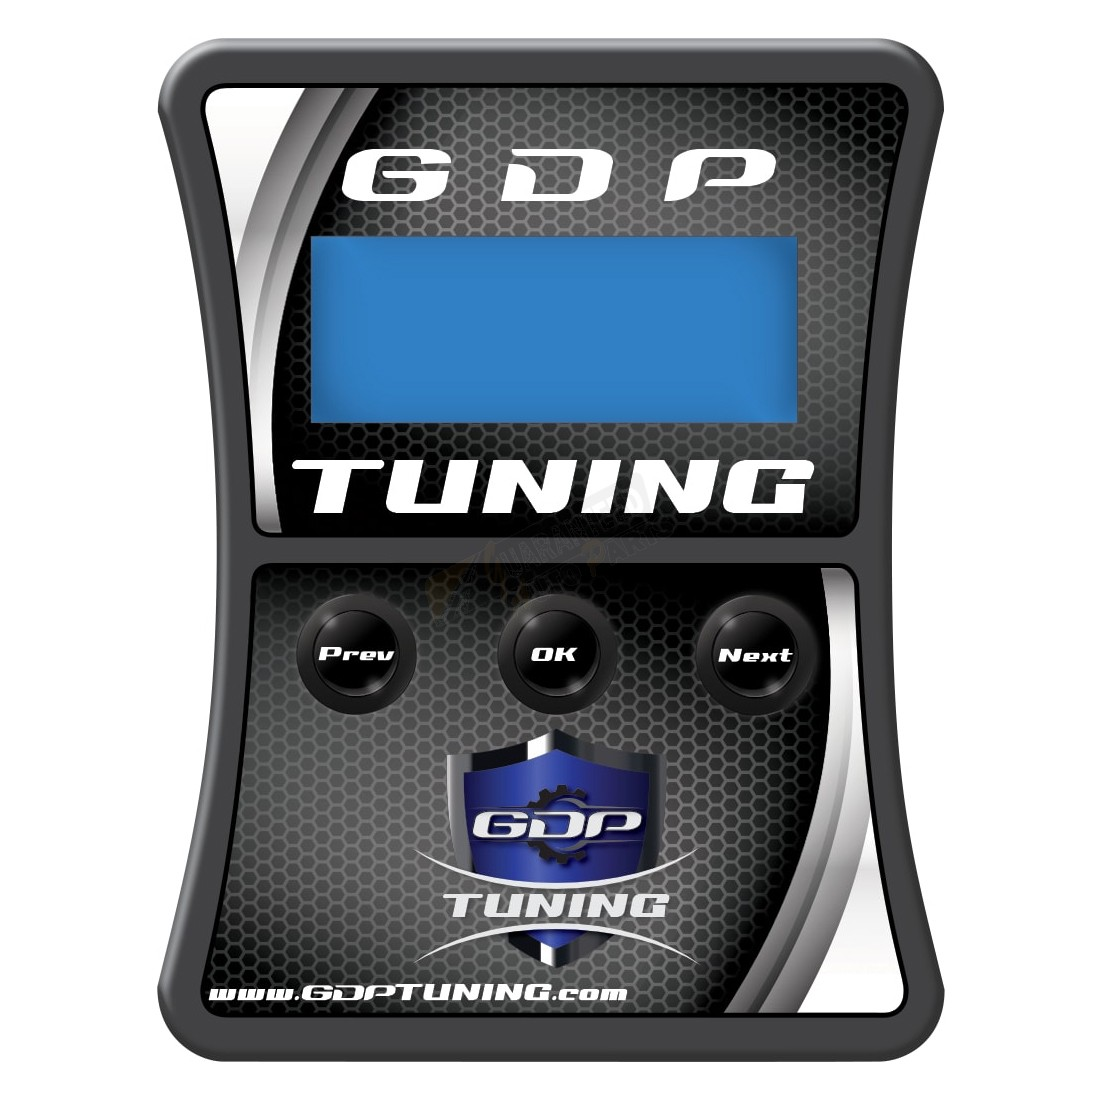 GDP Tuning EFI Live AutoCal Tuner - R1012CGP